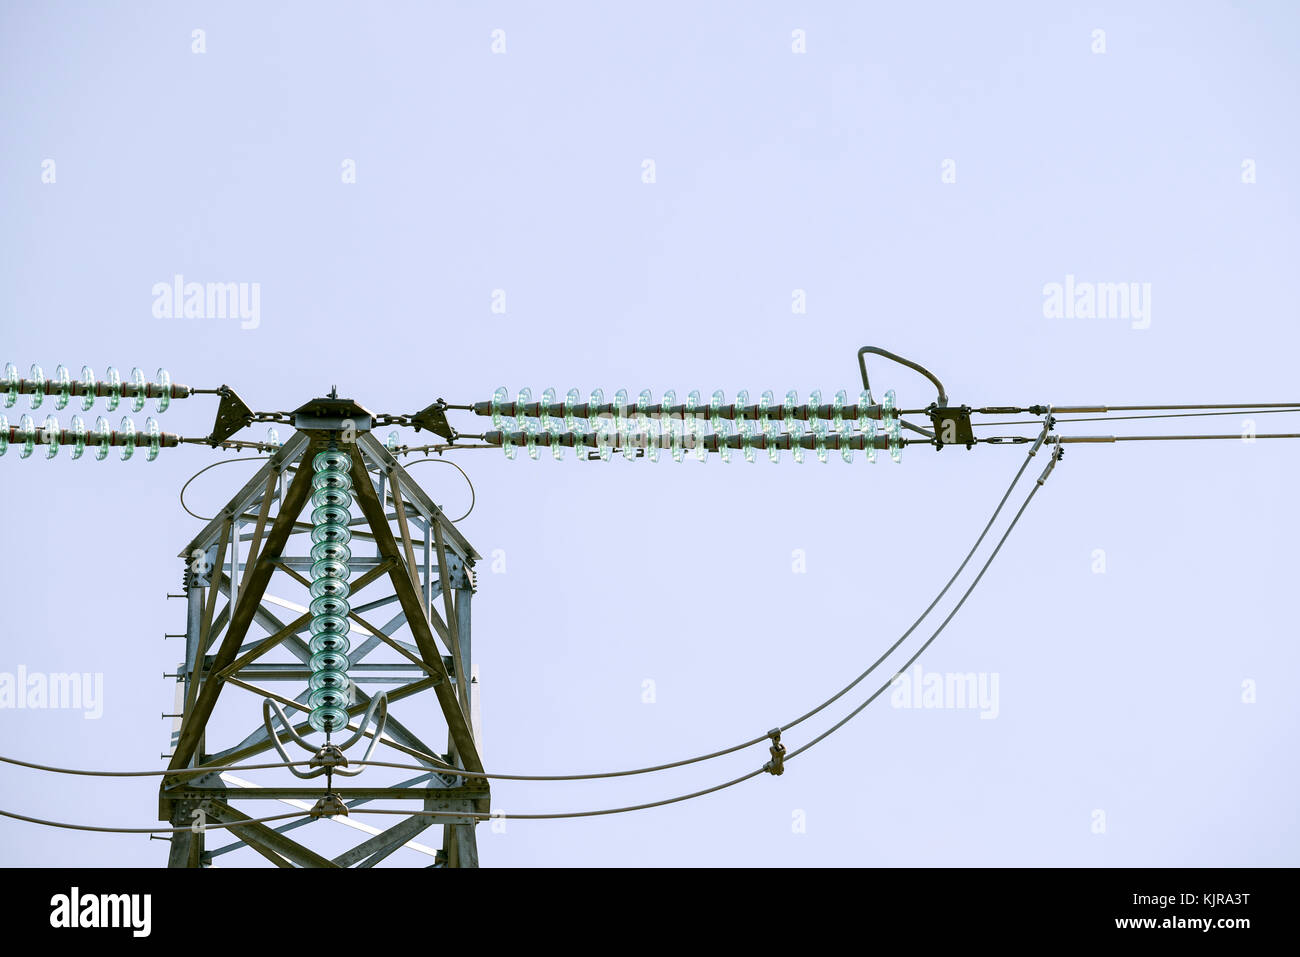 A detailed view of insulators on a high tension power line. - Stock Image